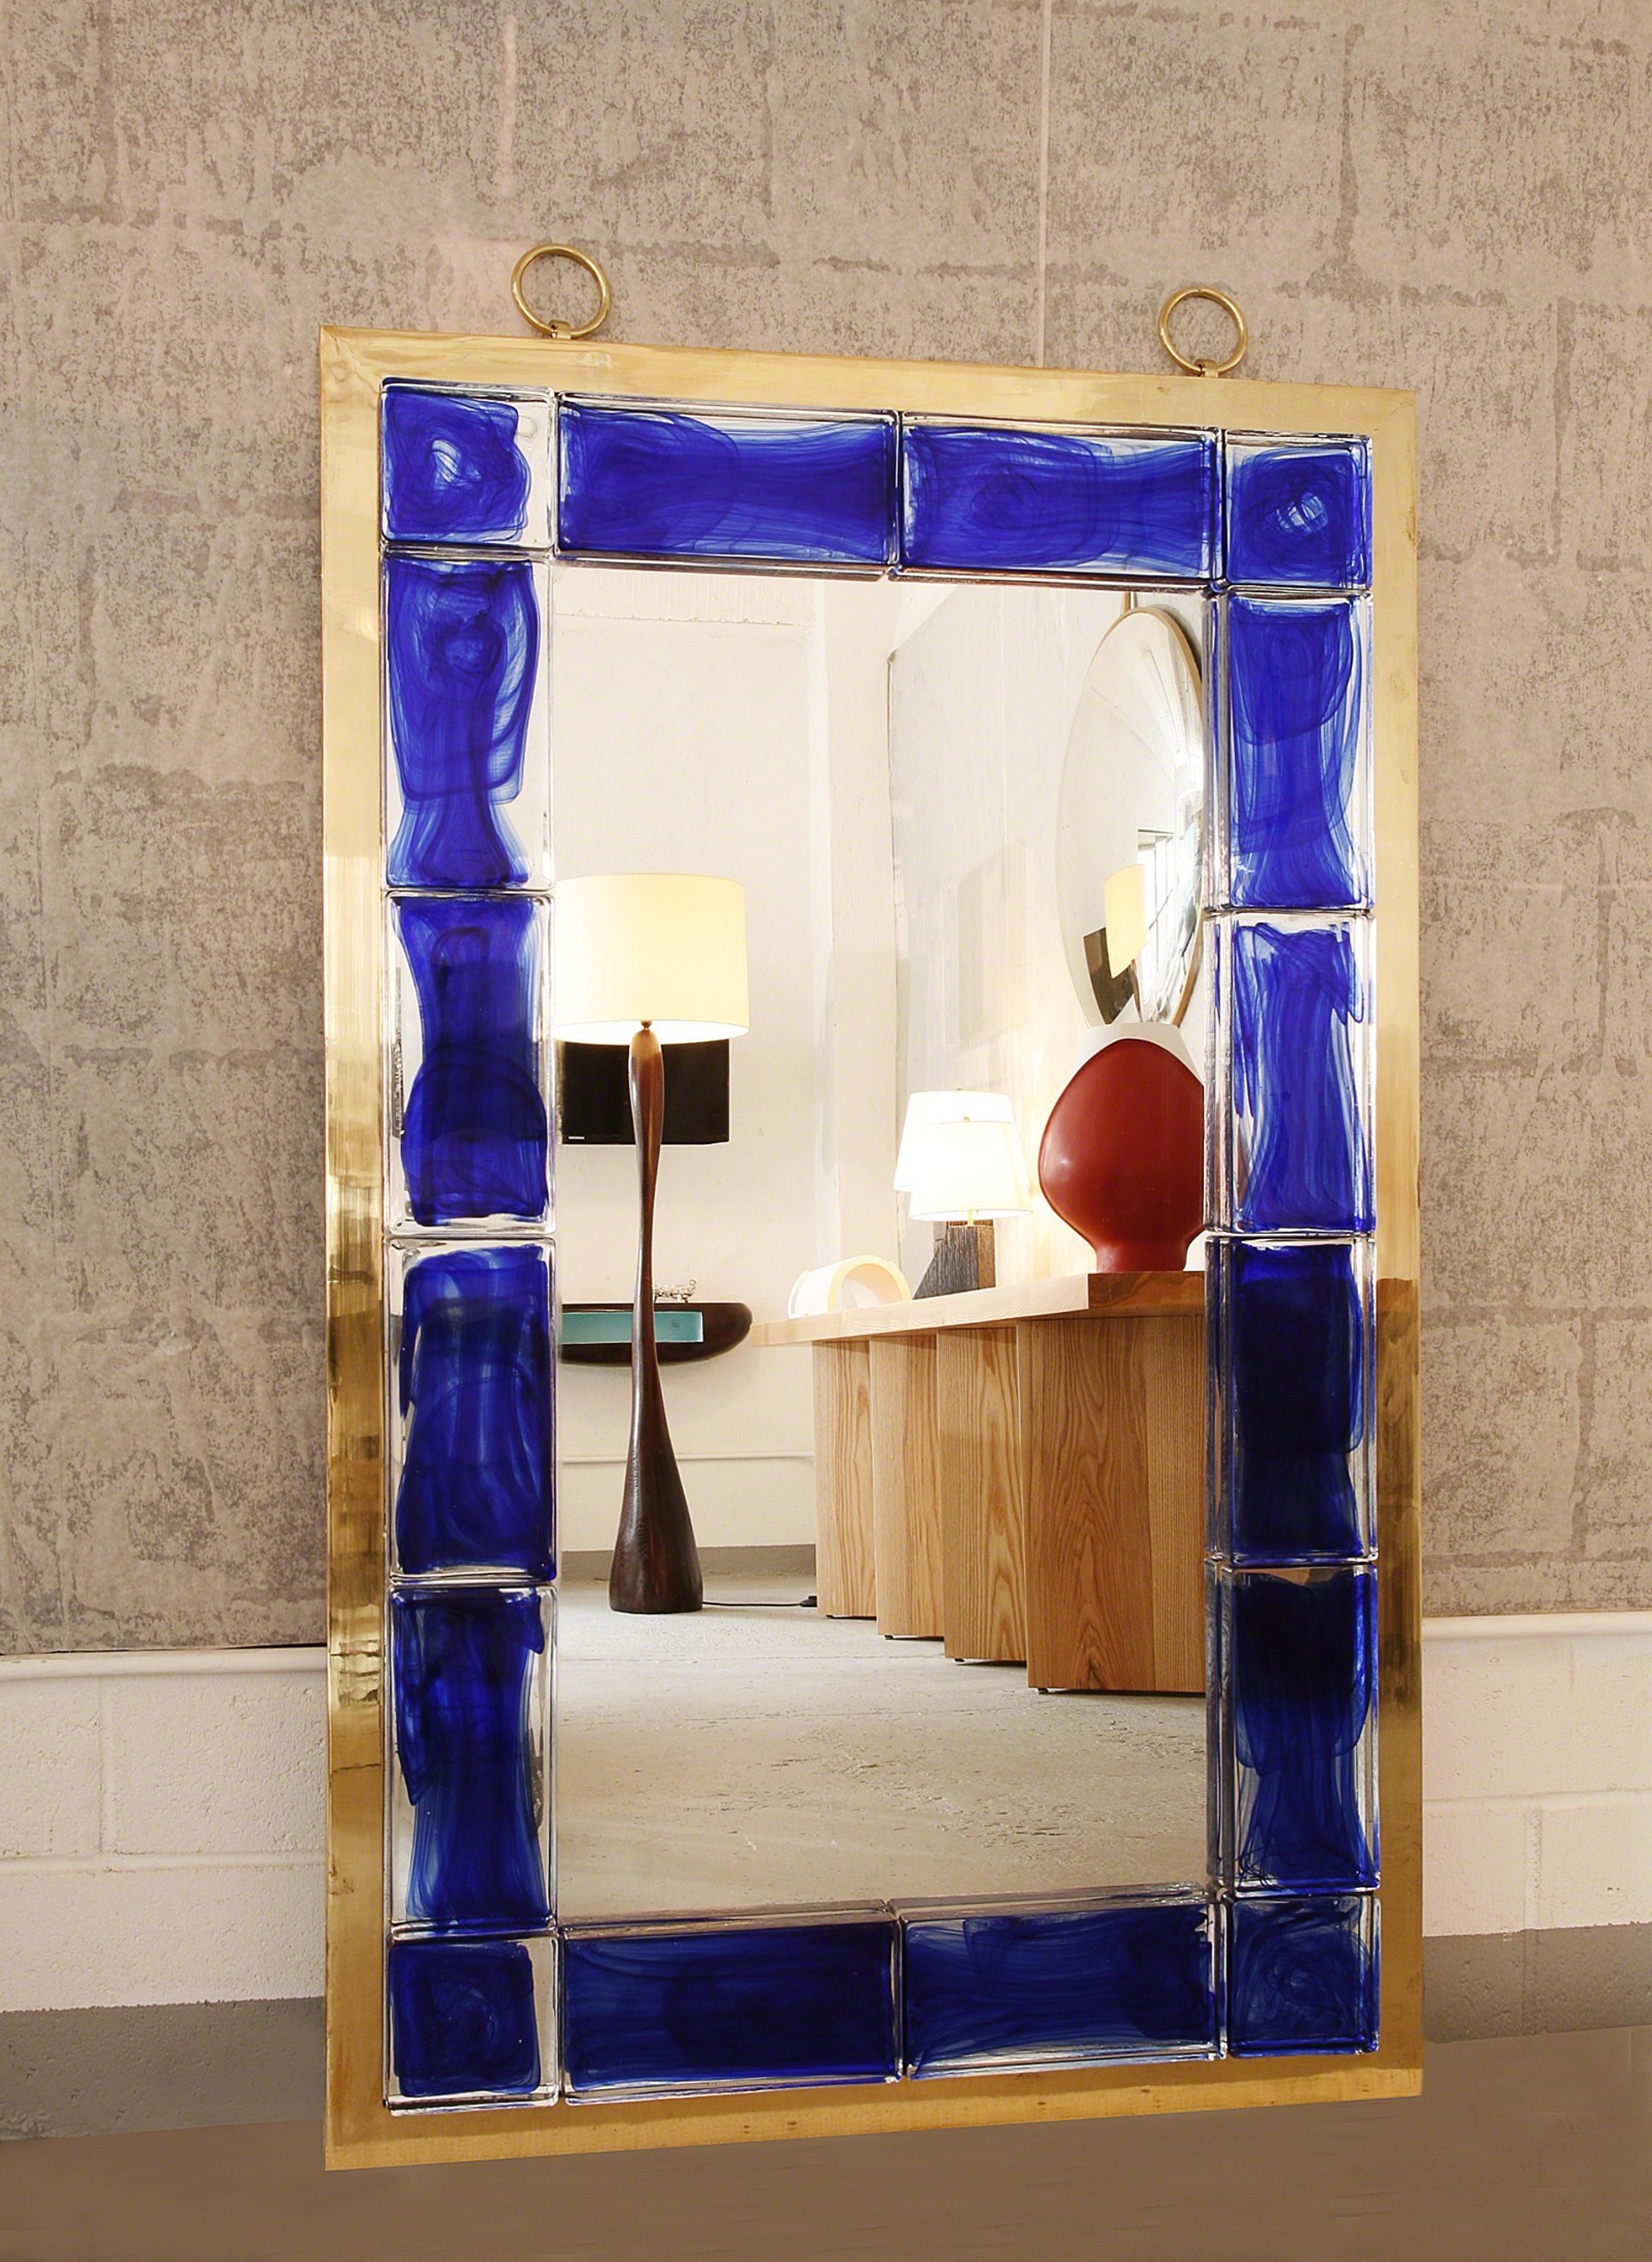 Blue tiled mirror by Andre Hayat